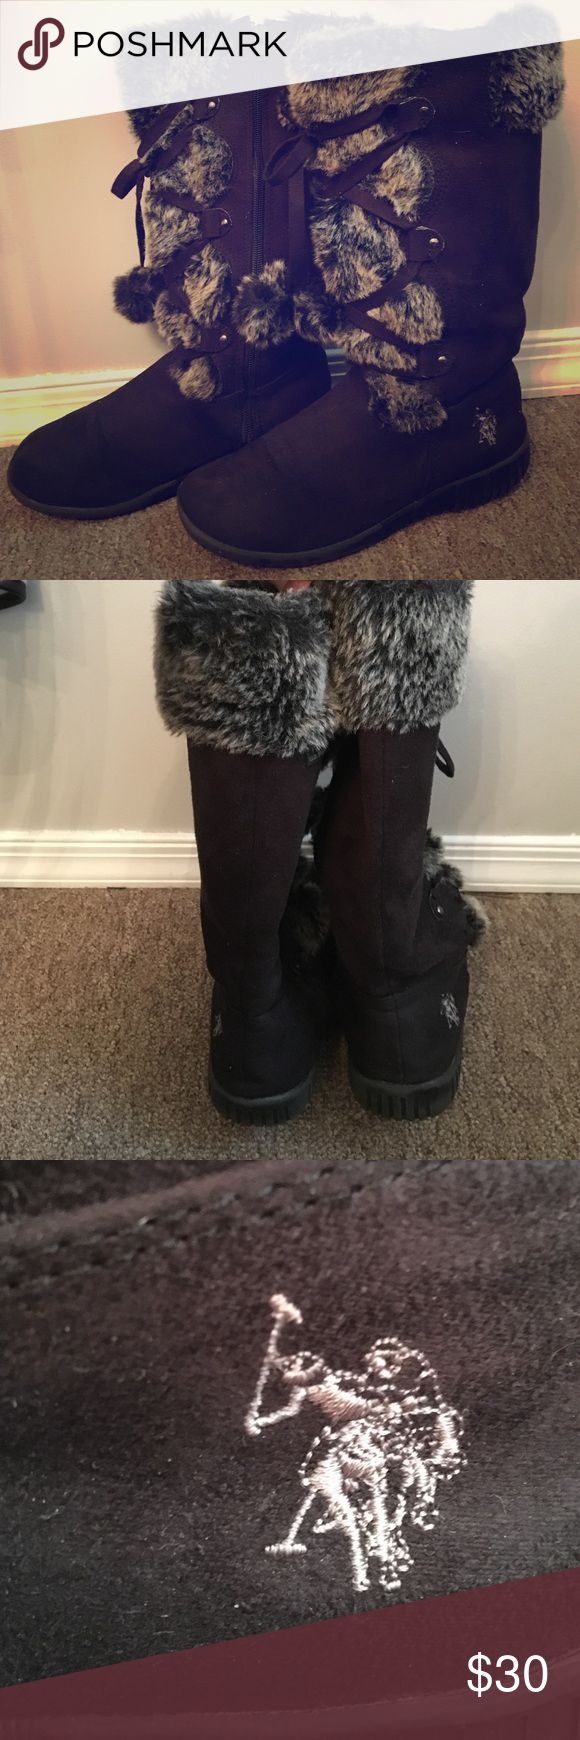 Polo by Ralph Lauren winter boots Black Polo by Ralph Lauren winter boots worn with care in good condition. Polo by Ralph Lauren Shoes Winter & Rain Boots